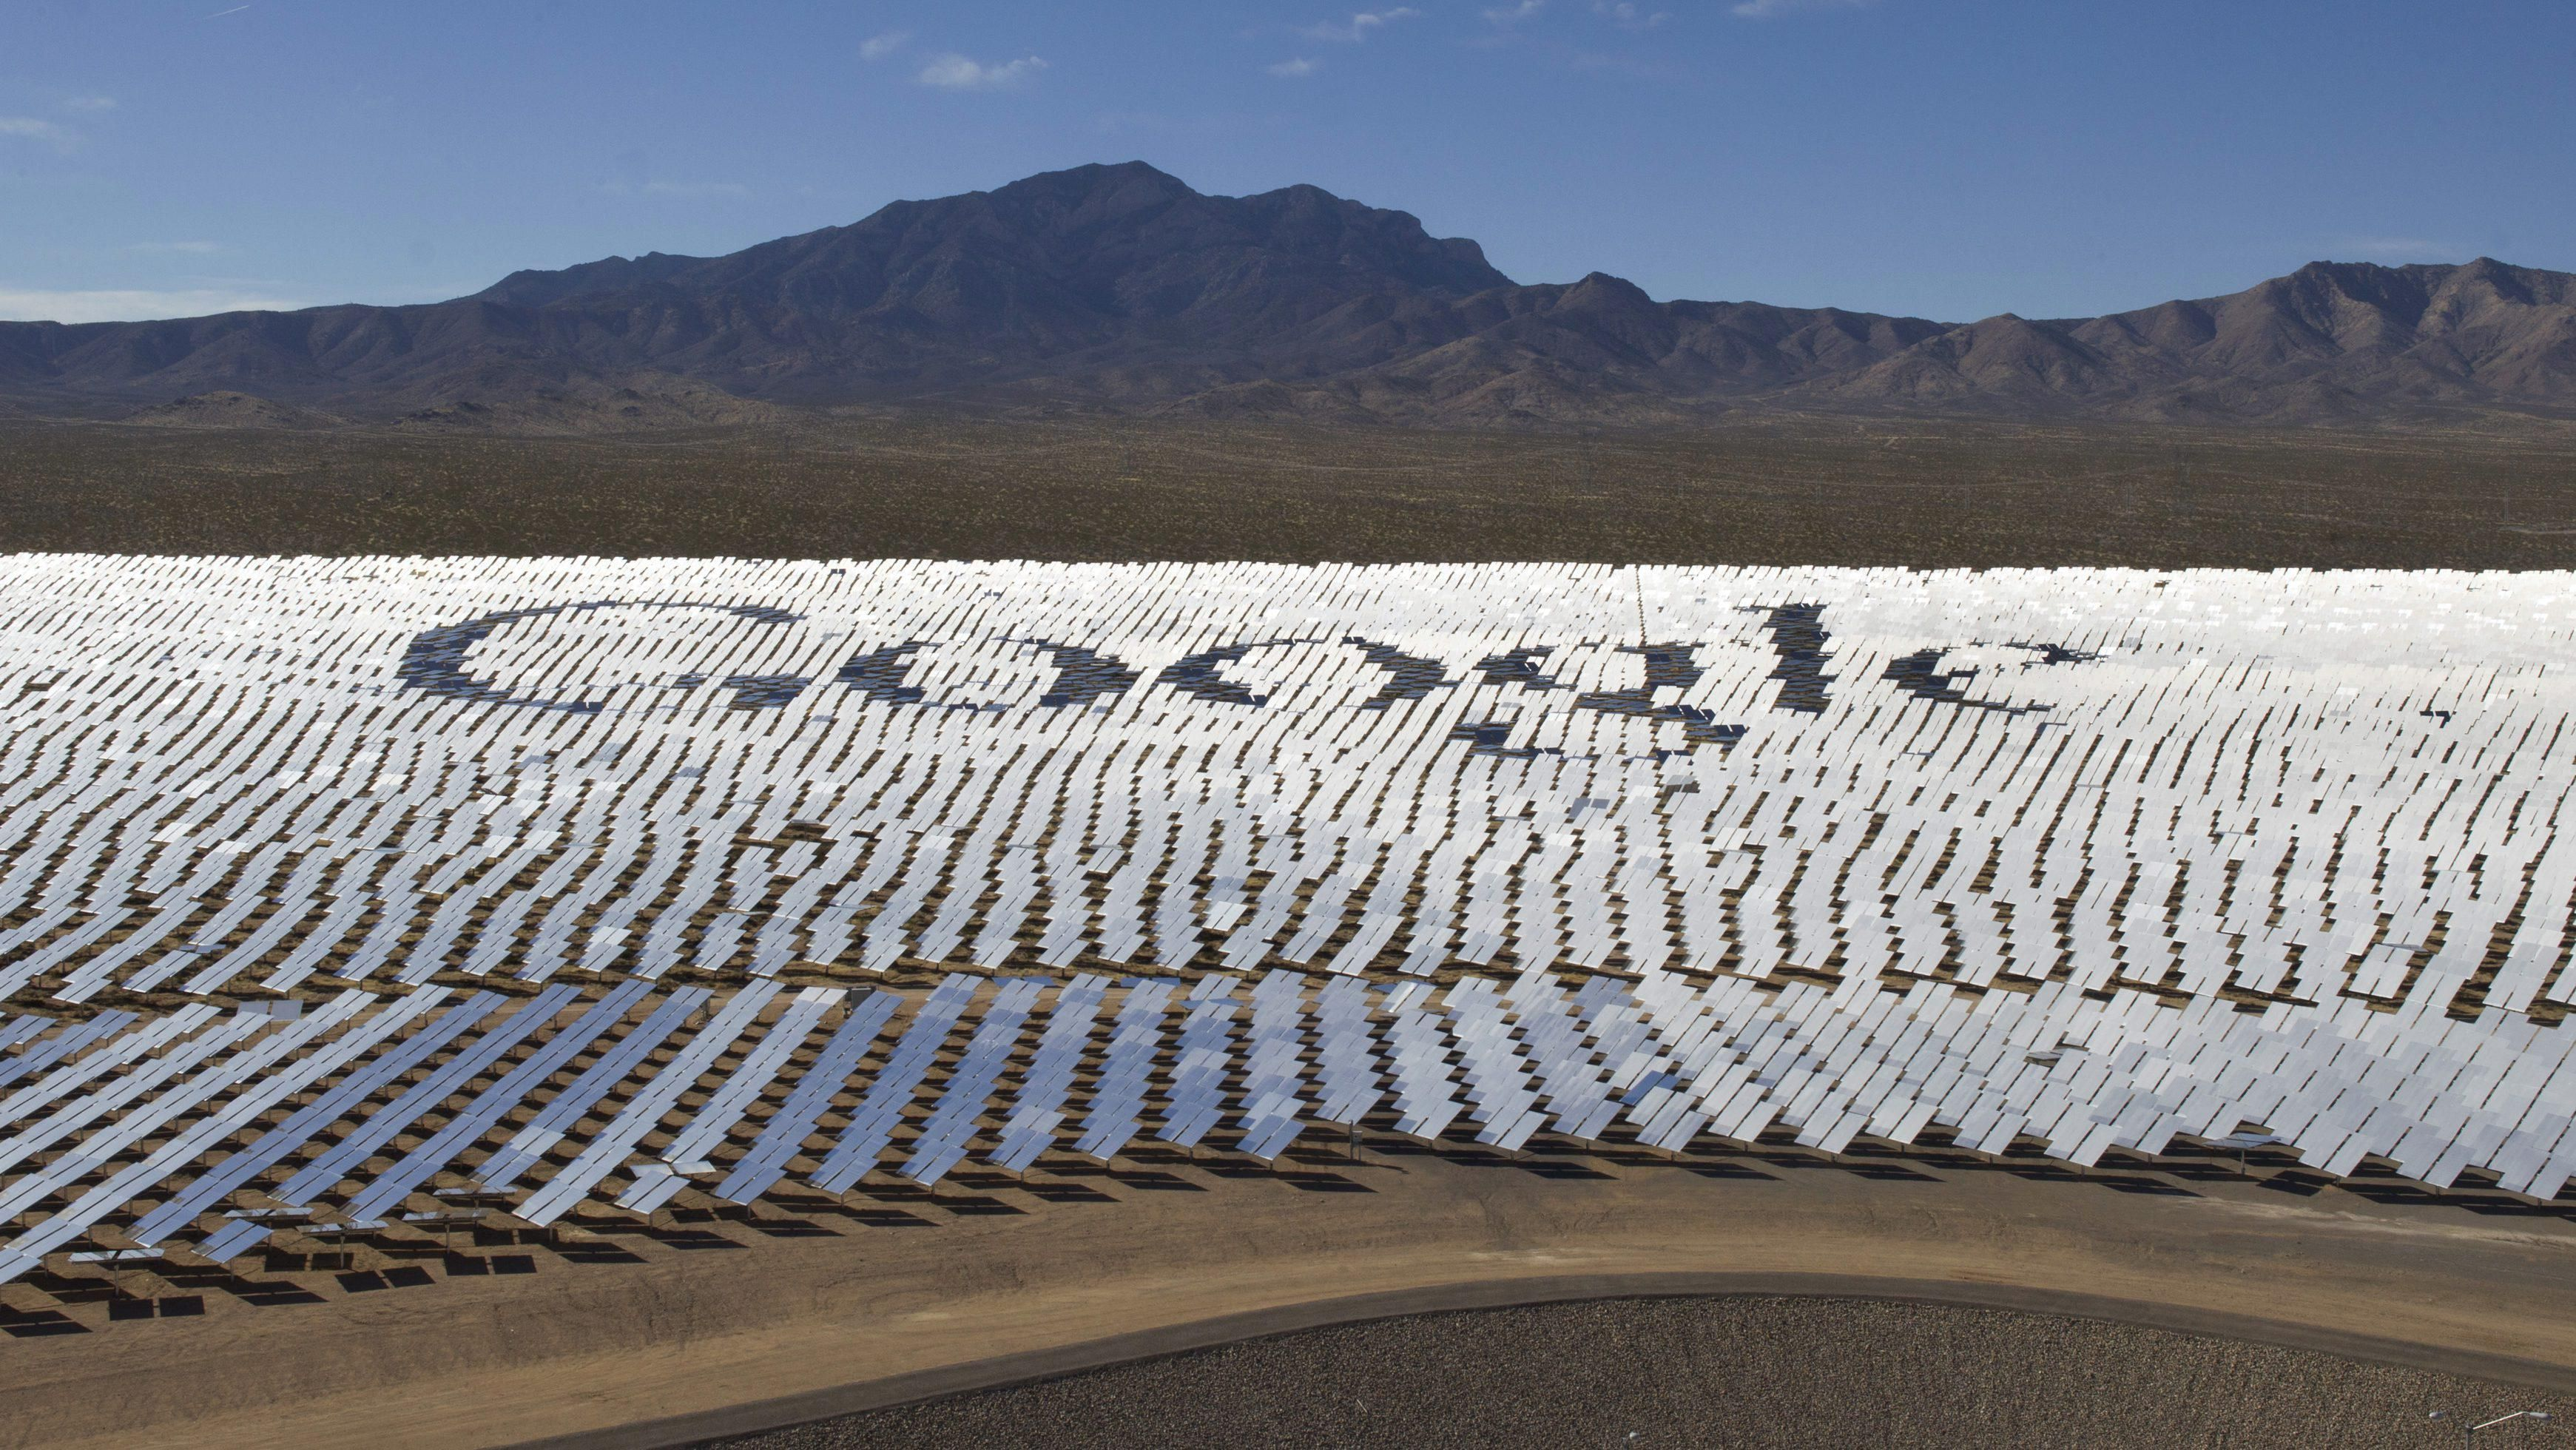 The Google Logo Is Spelled Out In Heliostats During A Tour Of Ivanpah Solar Power Facility Electricity Generation System Electric Generating Mojave Desert Near California Nevada